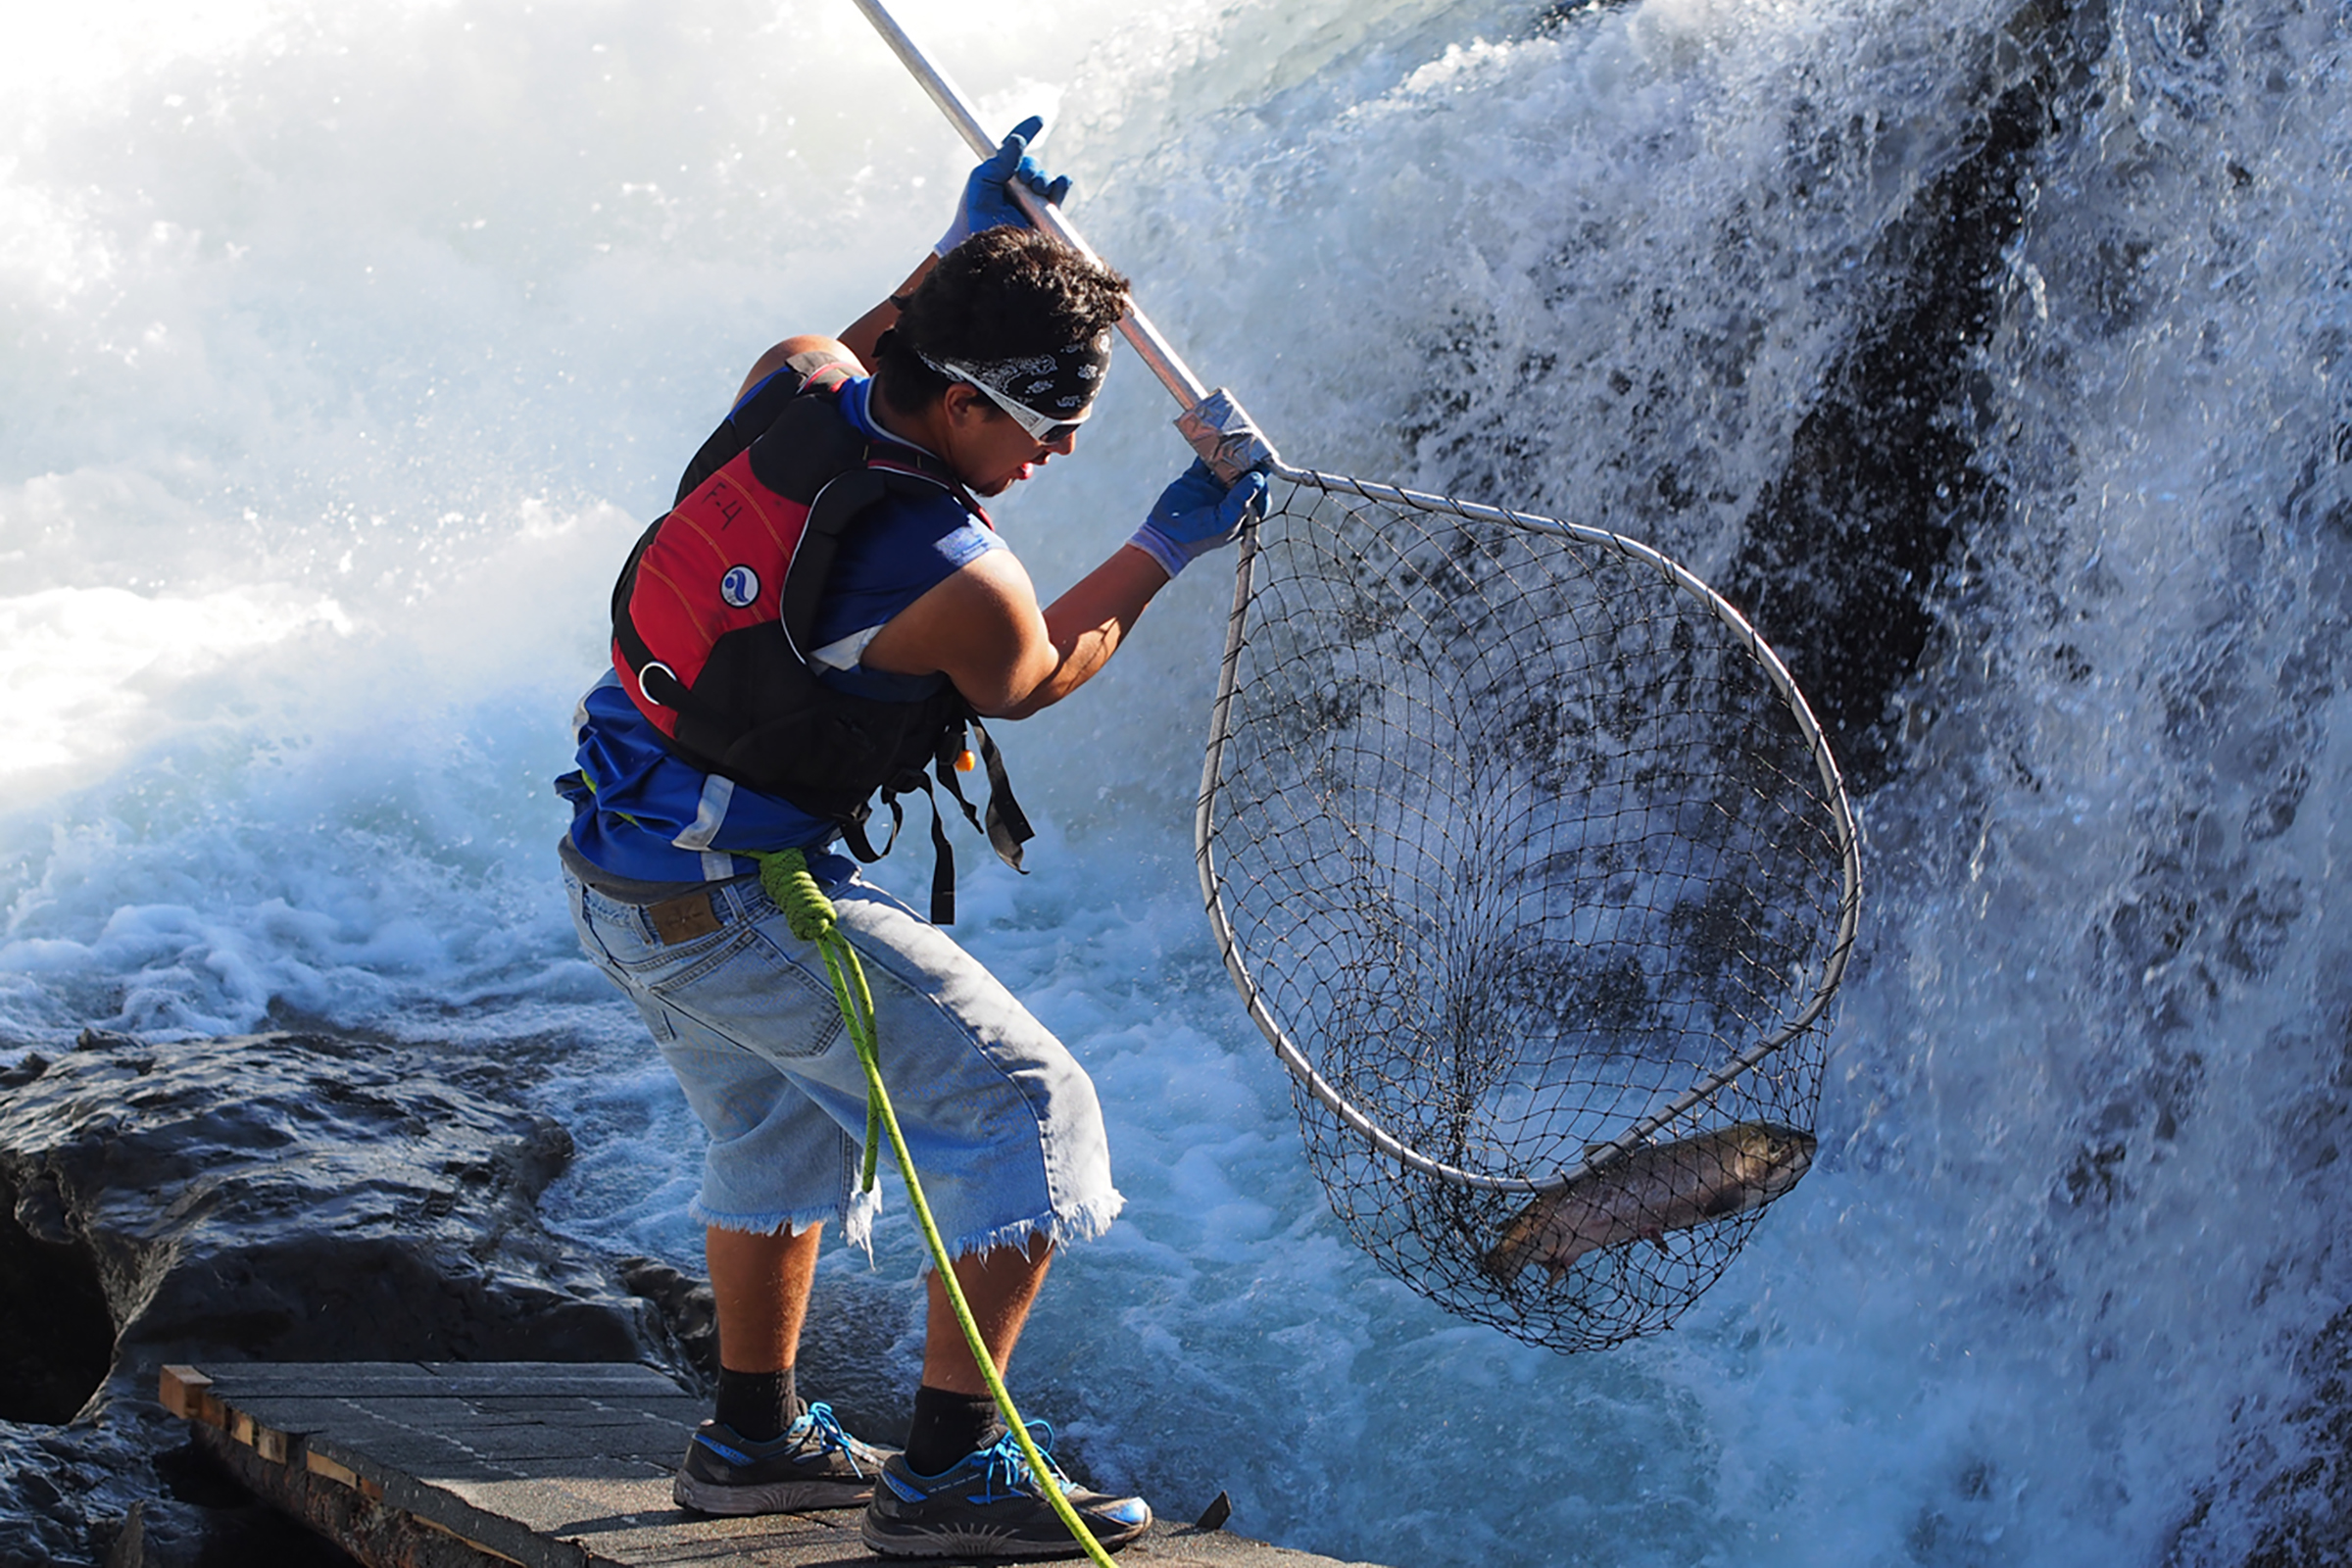 Brandon Pete uses a traditional First Nations capture method to net a salmon in mid-air as it leaps up the rapids during its migration up the Skeena River in Northern British Columbia. Photograph by Walter Joseph